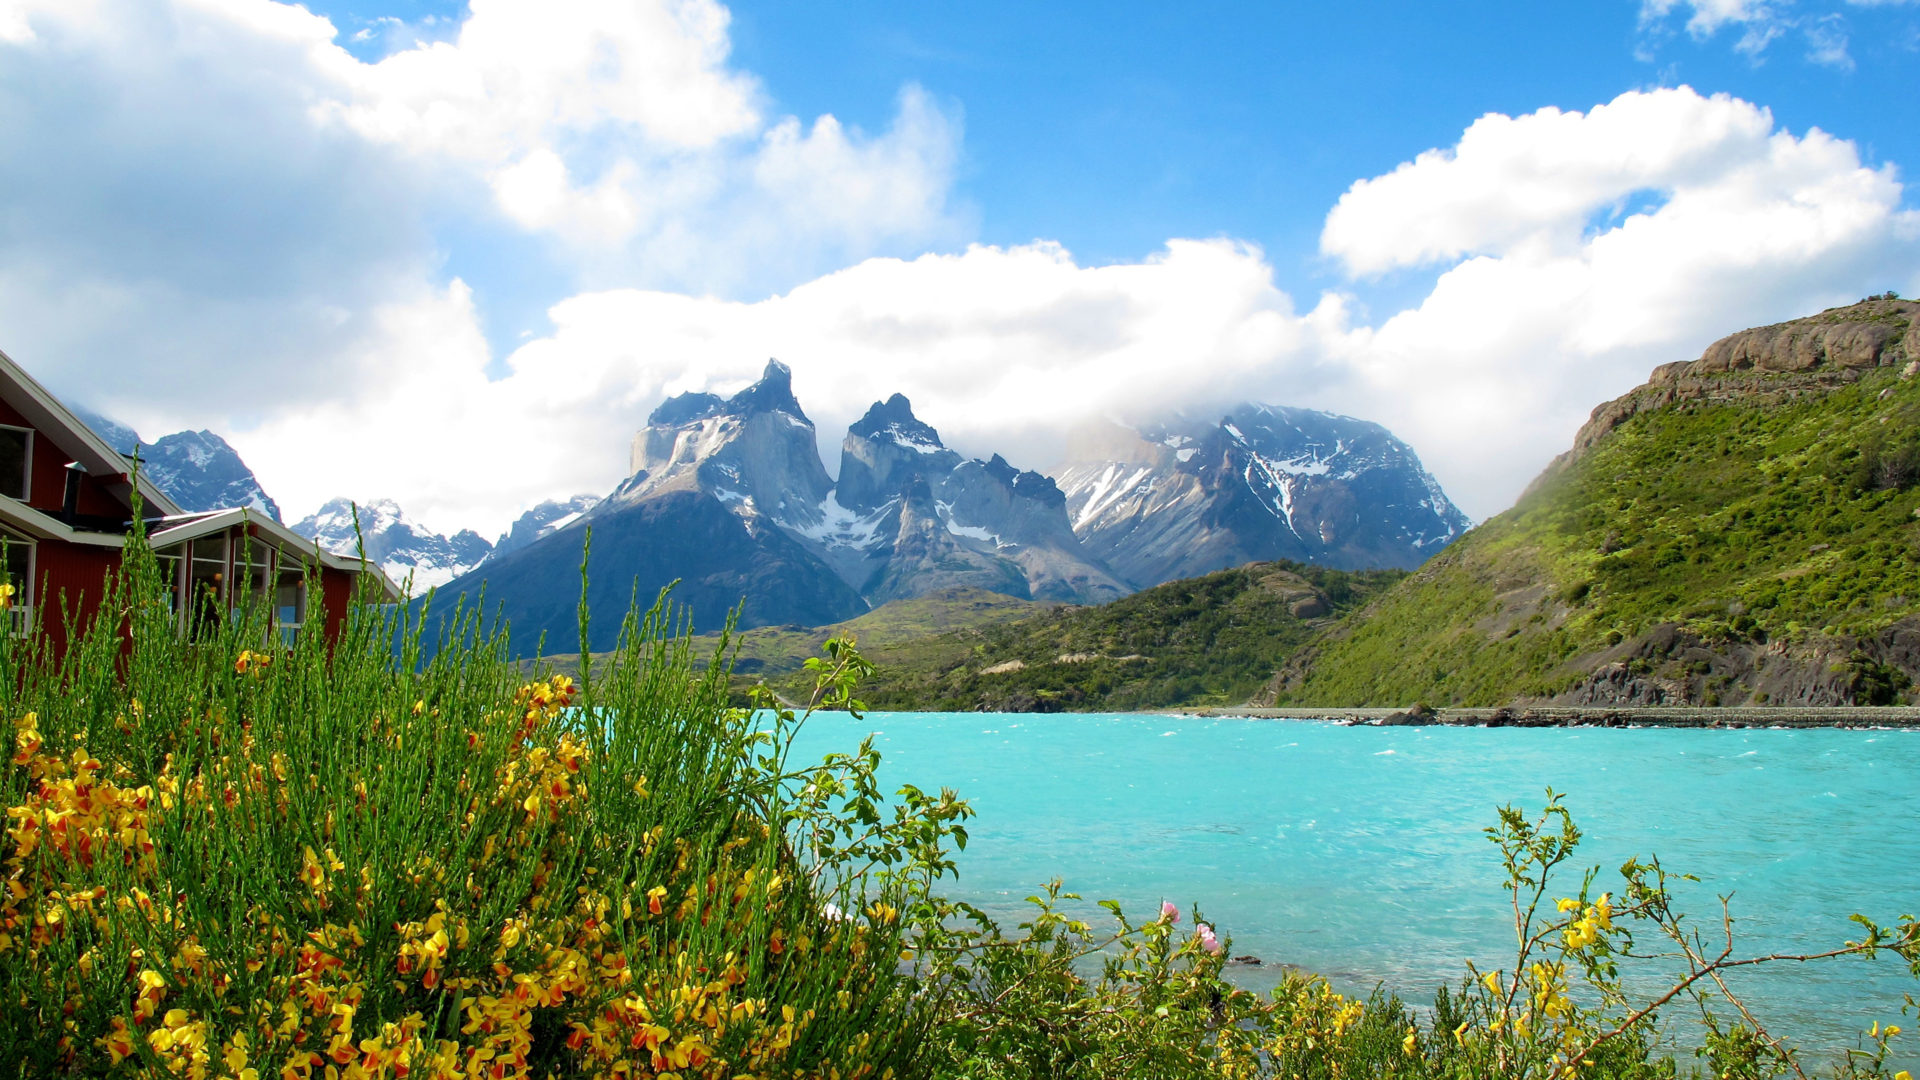 Dota 2 Wallpaper Full Hd Cuernos Horns Del Paine Torres Del Paine National Park